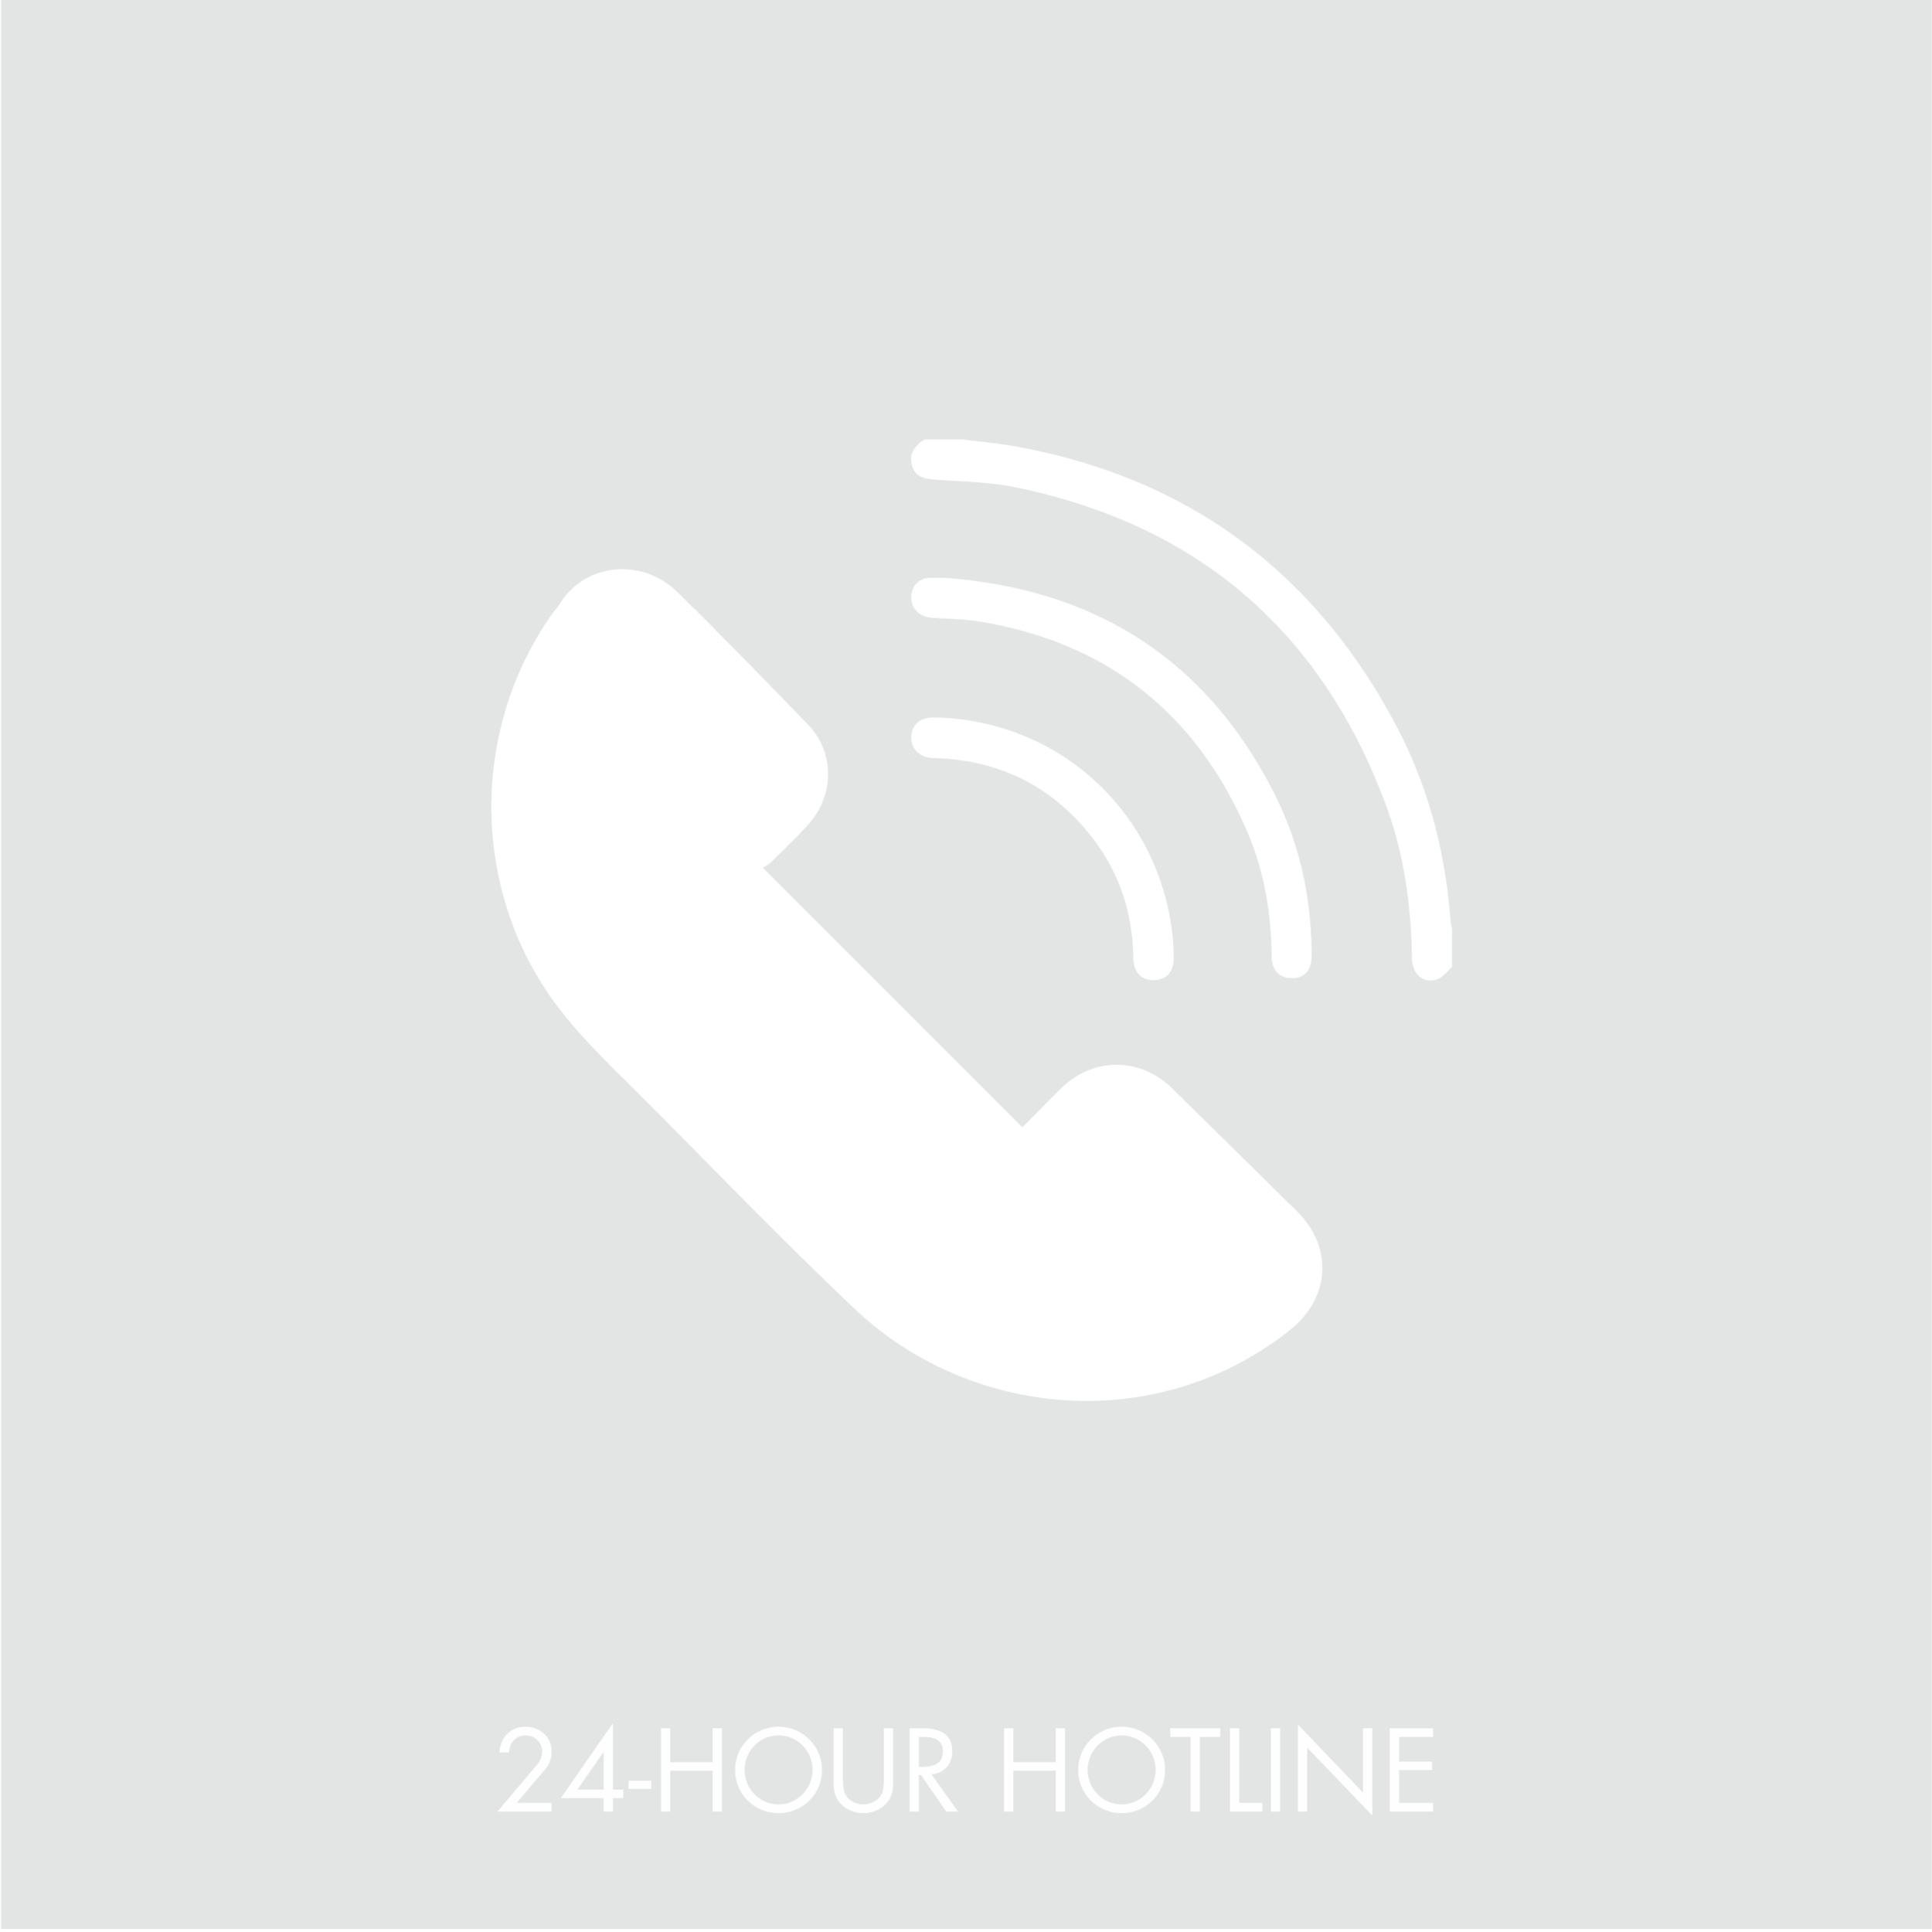 24 HOUR HOTLINE